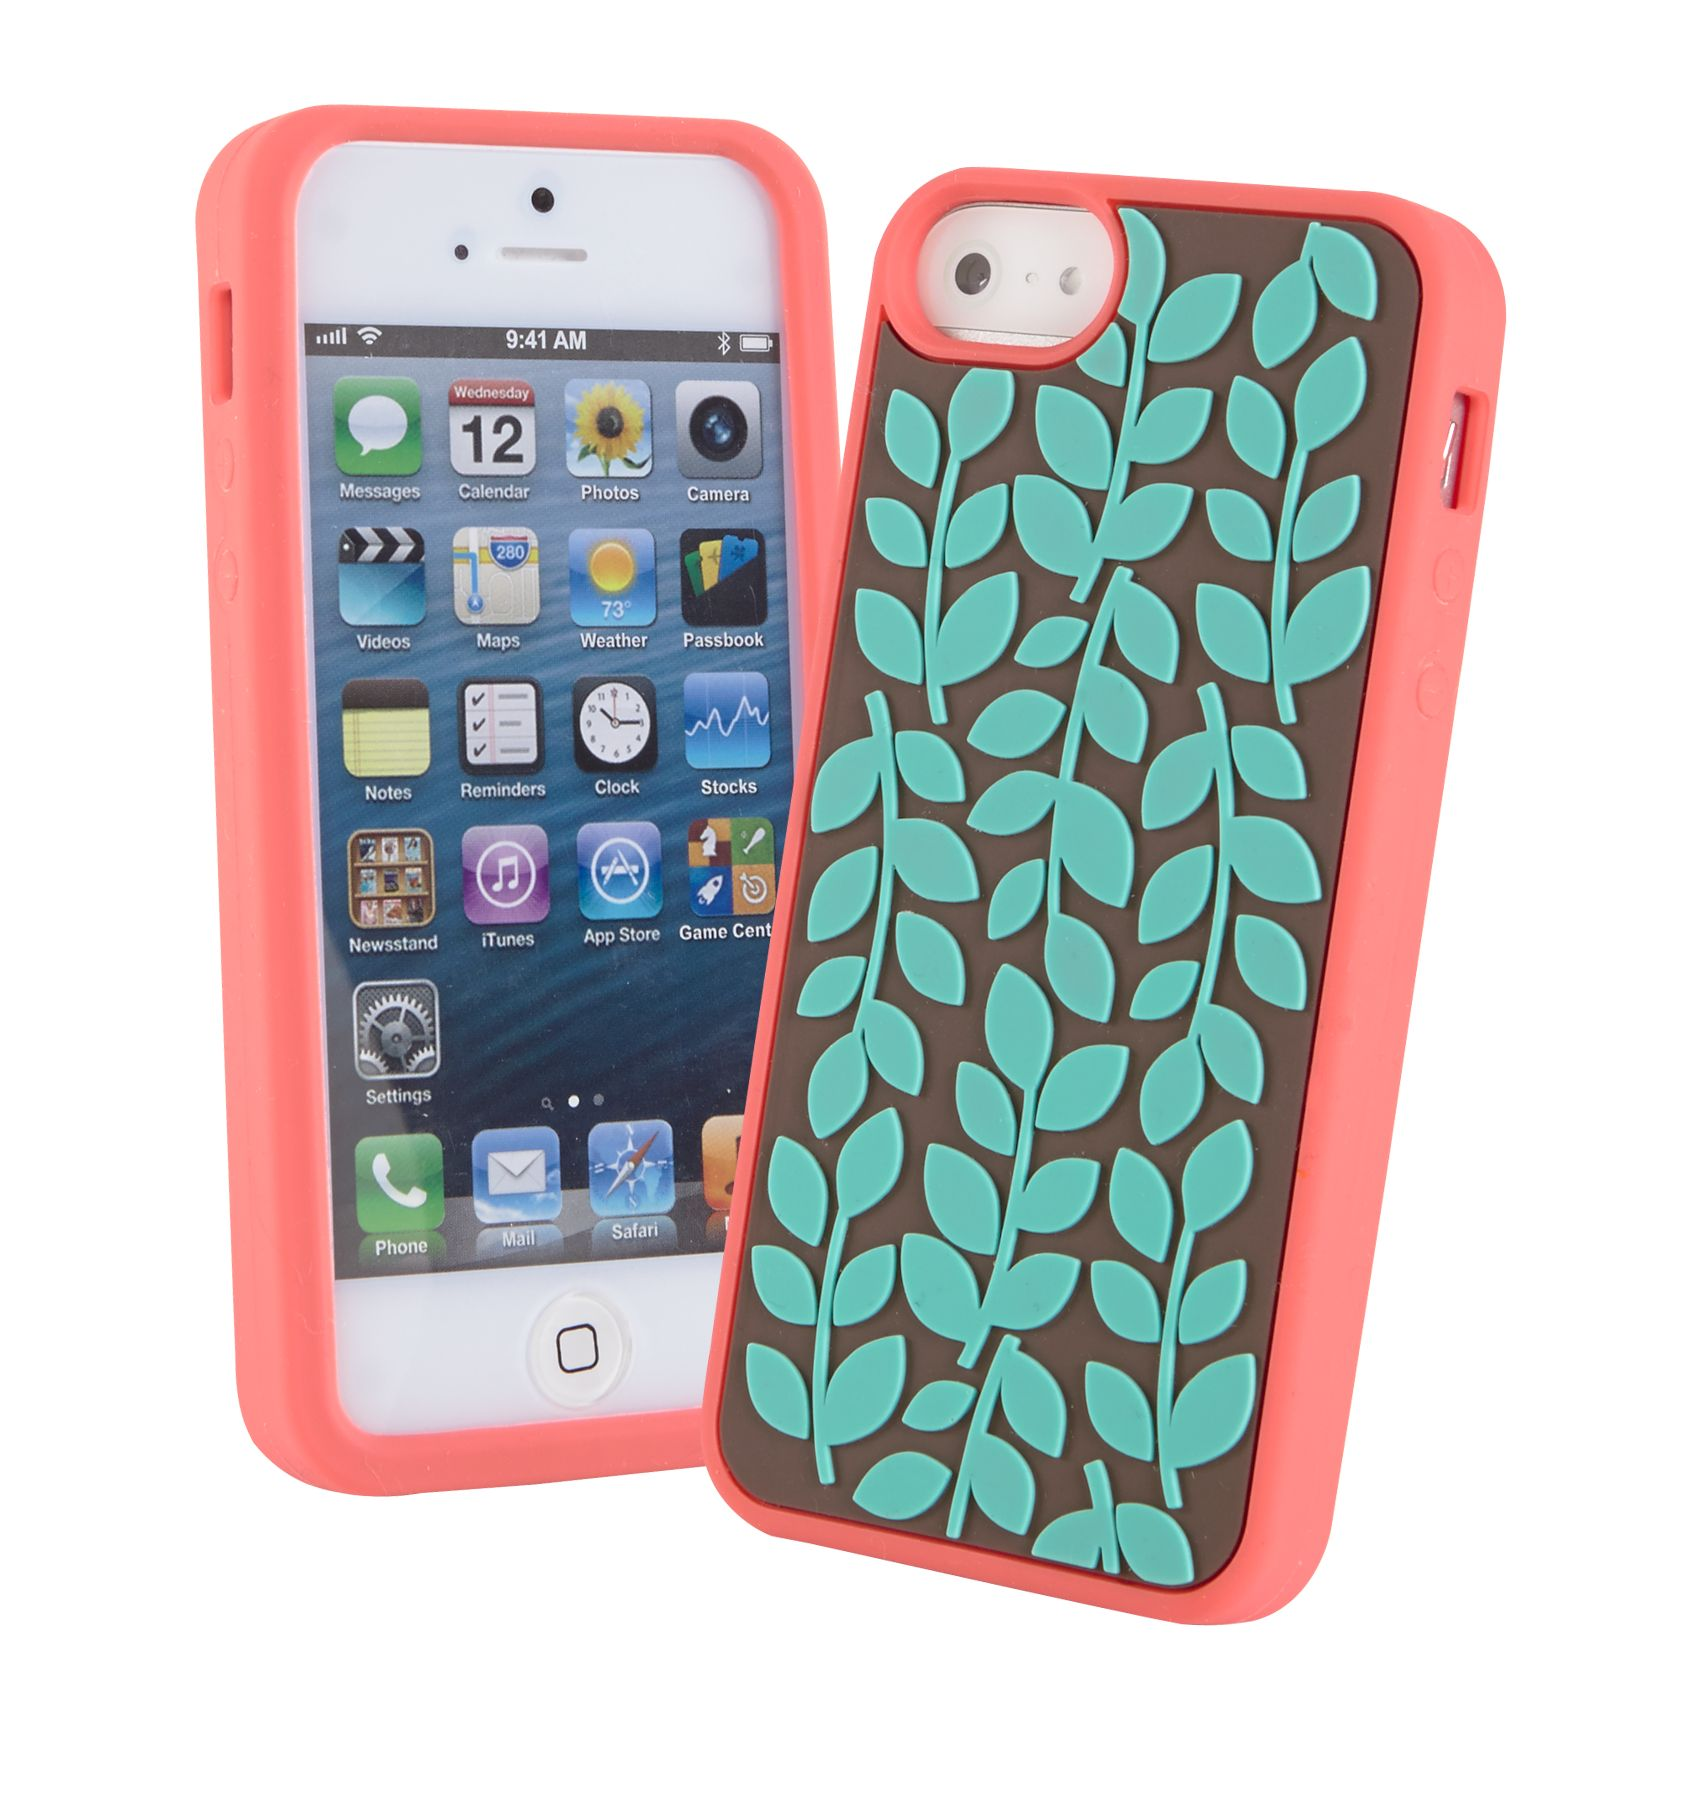 vera bradley iphone 5 case vera bradley soft frame phone for iphone 5 18147